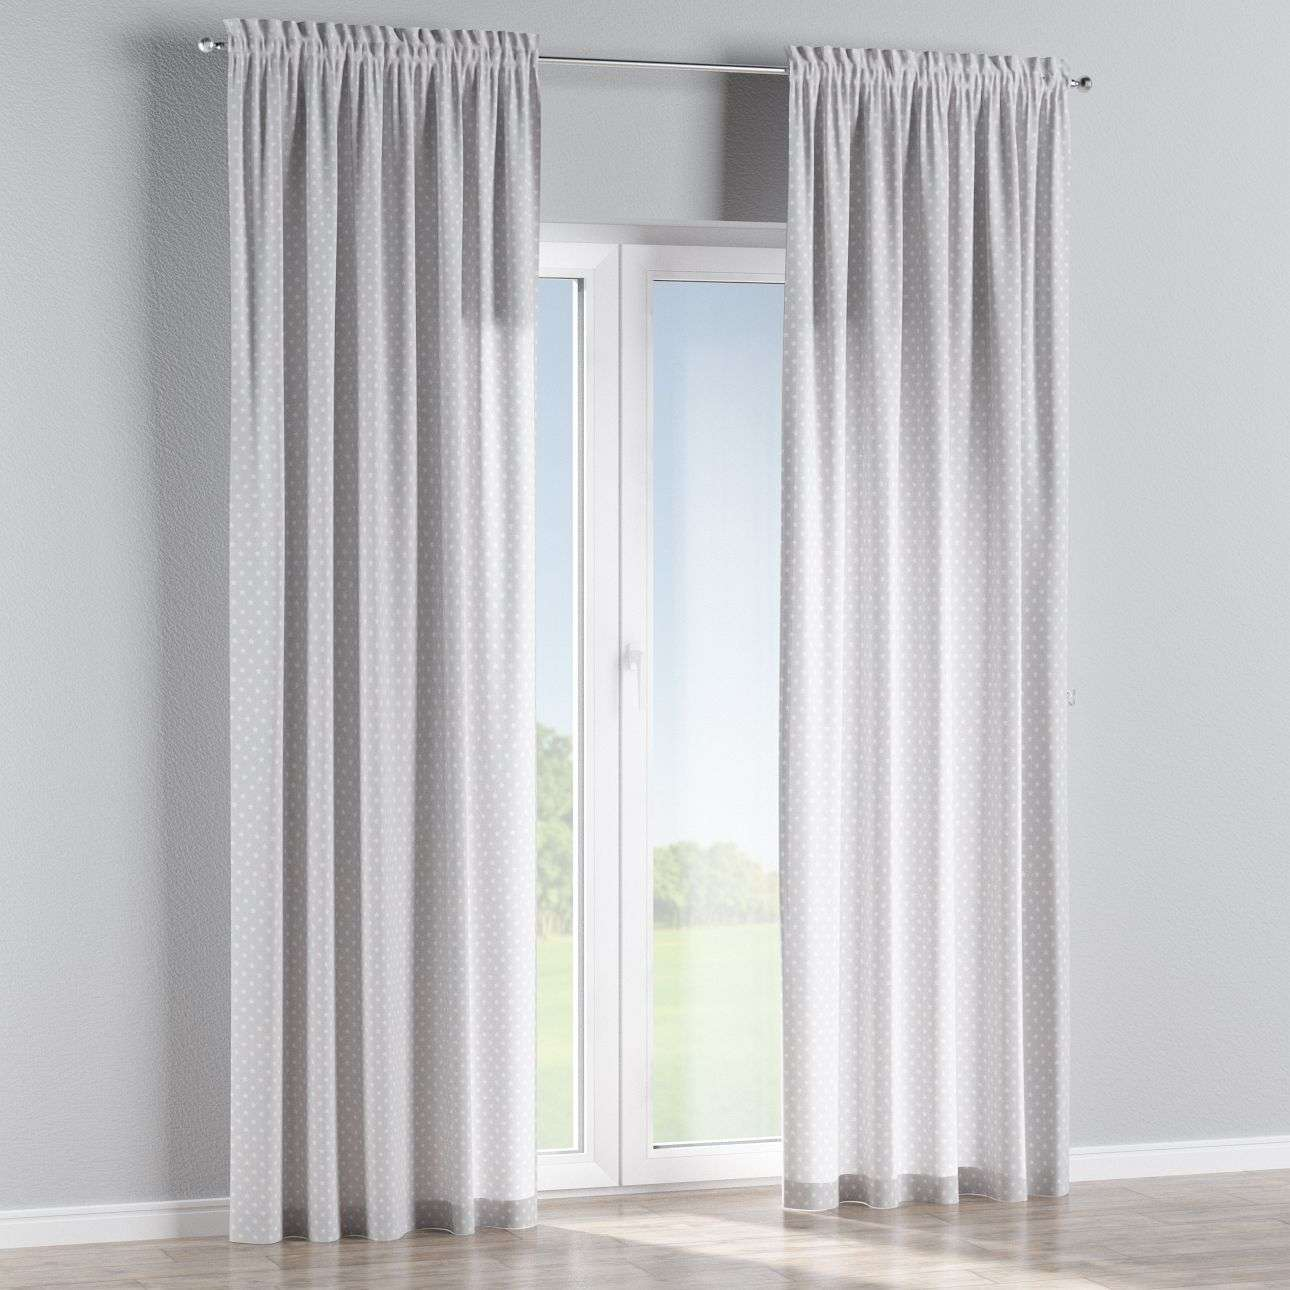 Slot and frill curtains in collection Ashley, fabric: 137-67